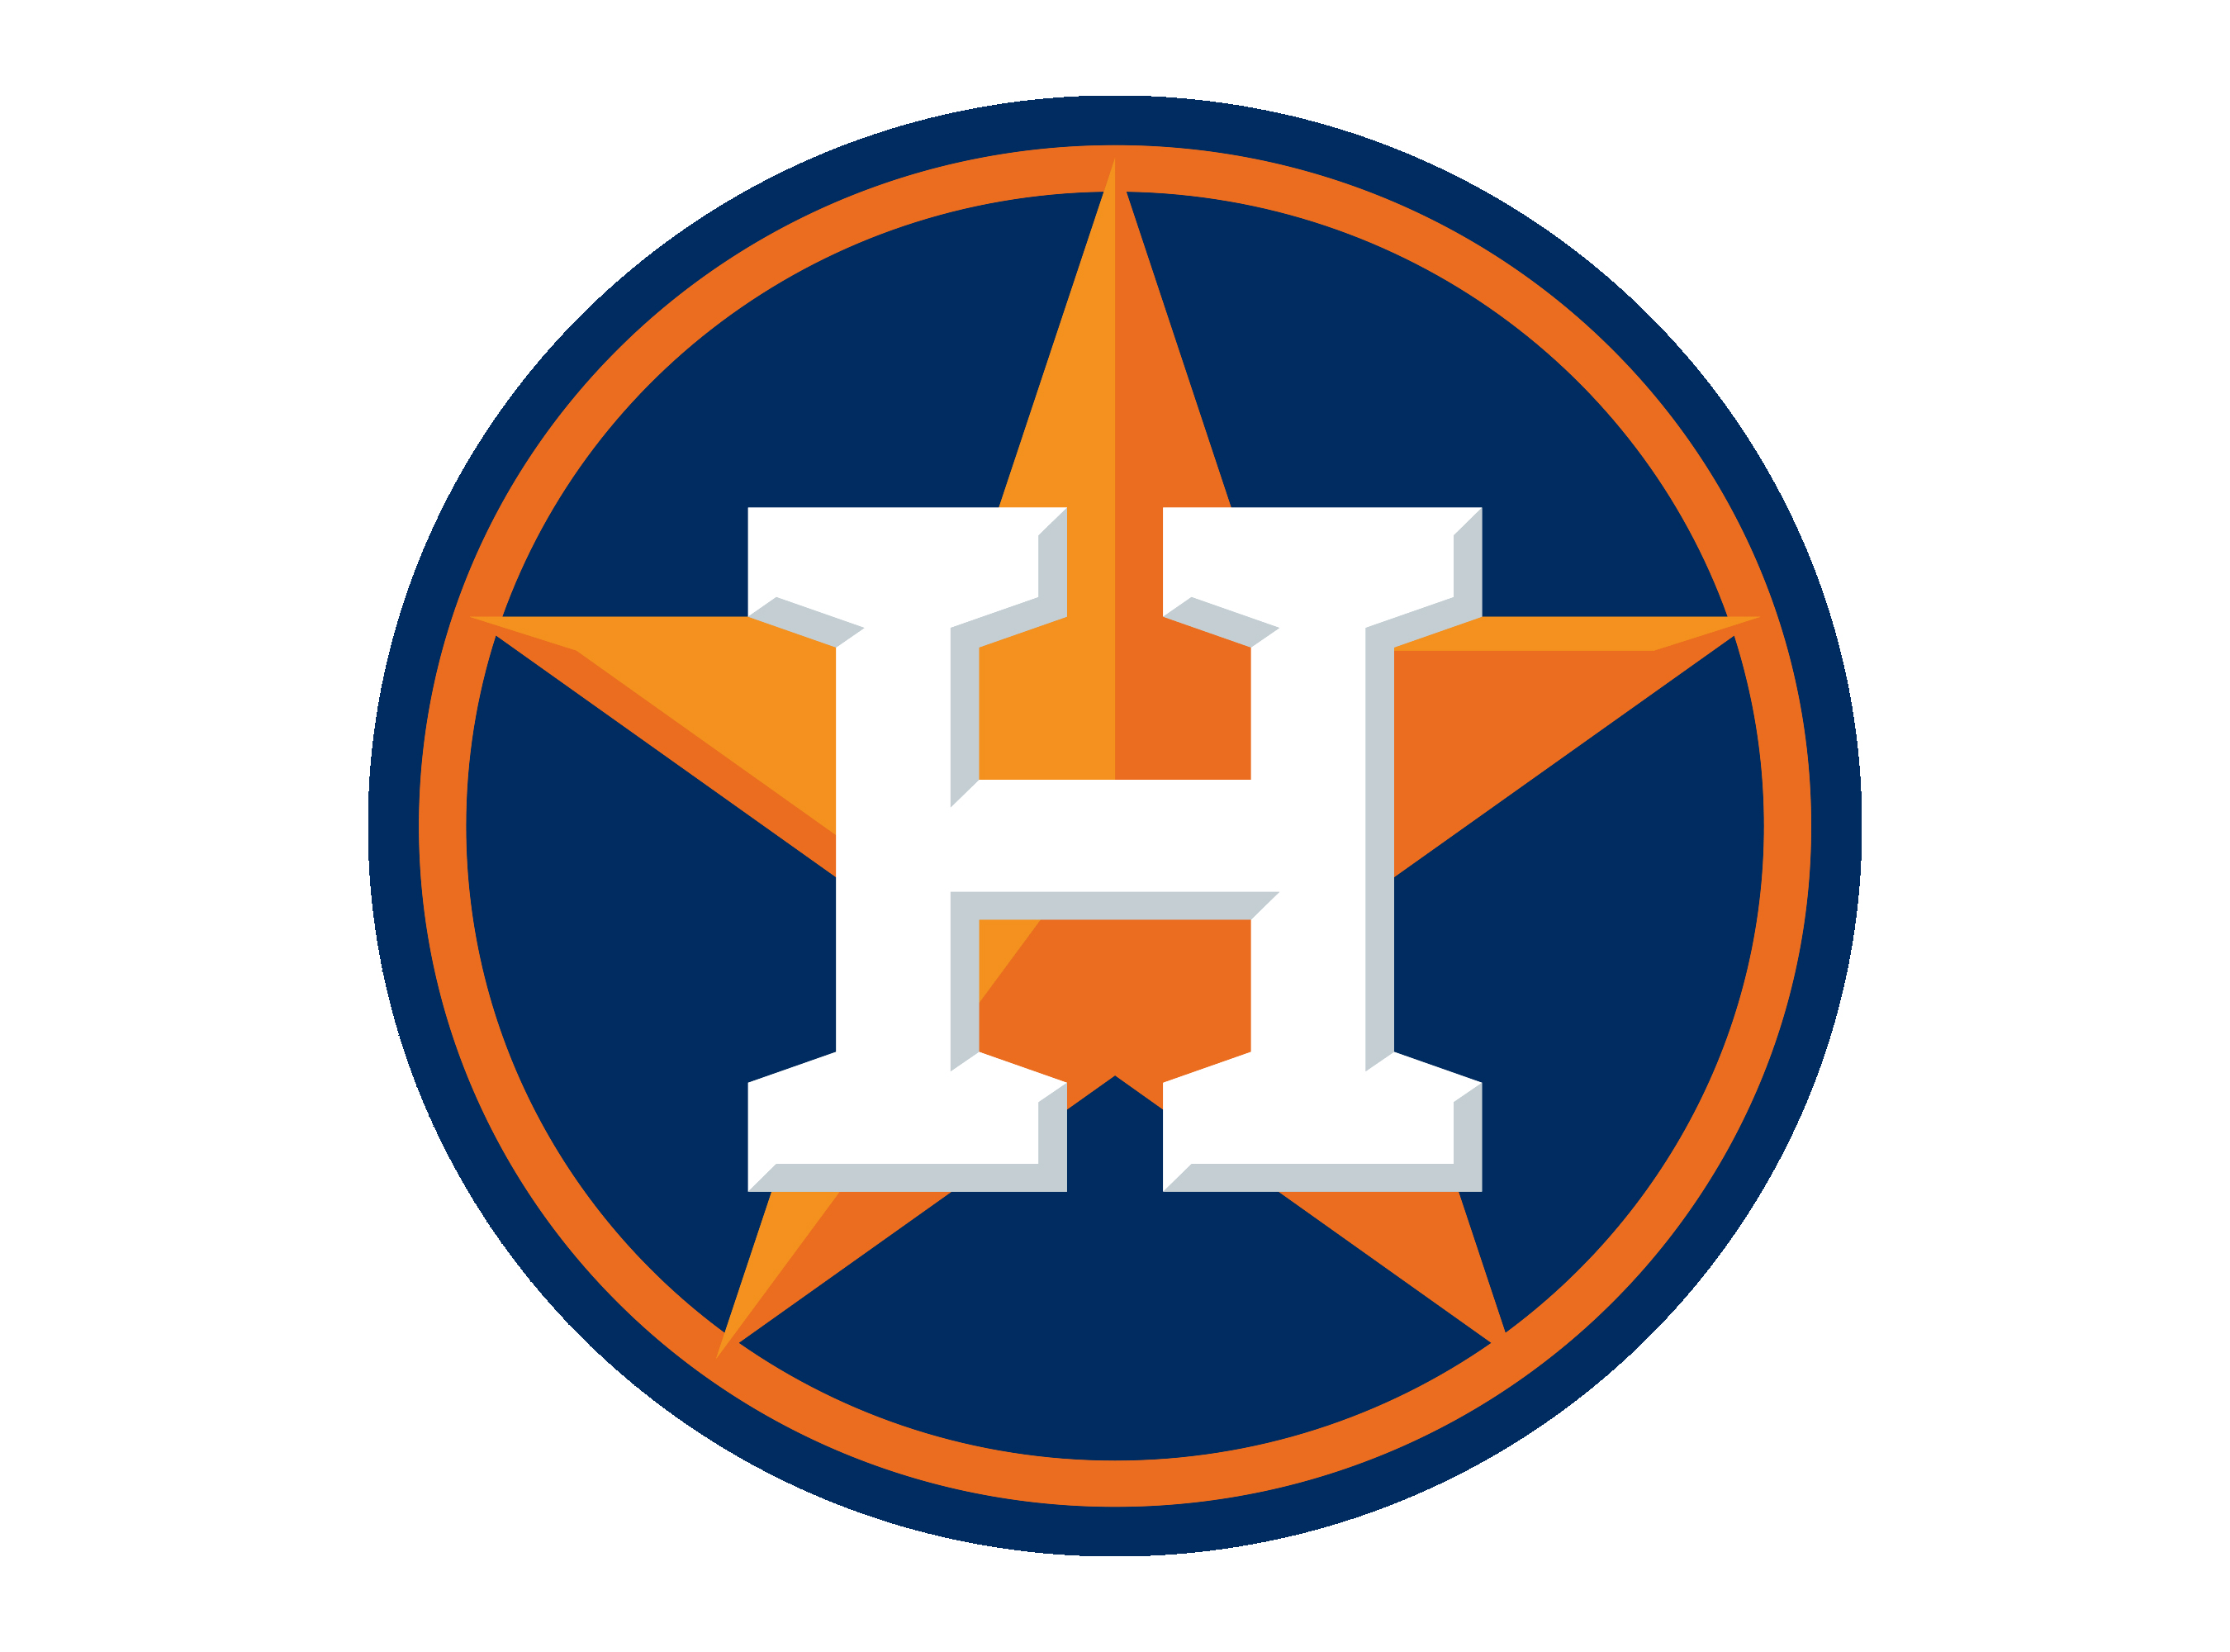 houston astros logo  astros symbol  meaning  history and